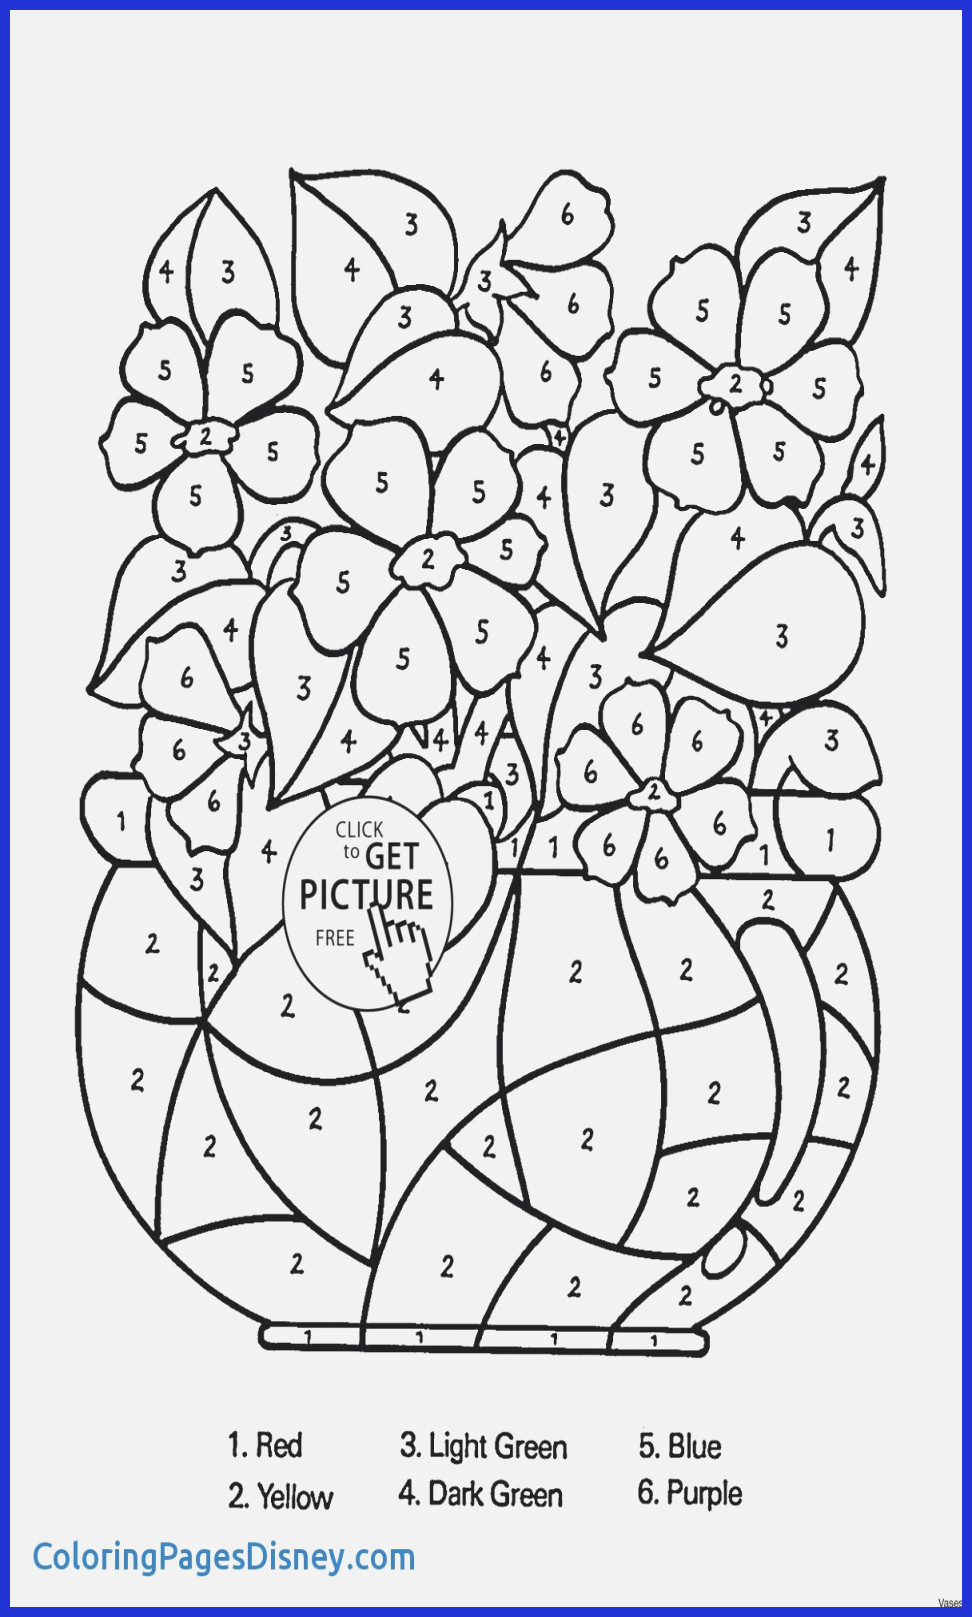 white owl vase of 16 free printable butterfly coloring pages www gsfl info regarding coloring sheet png coloring sheets lovely cool vases flower vase coloring page pages flowers in a